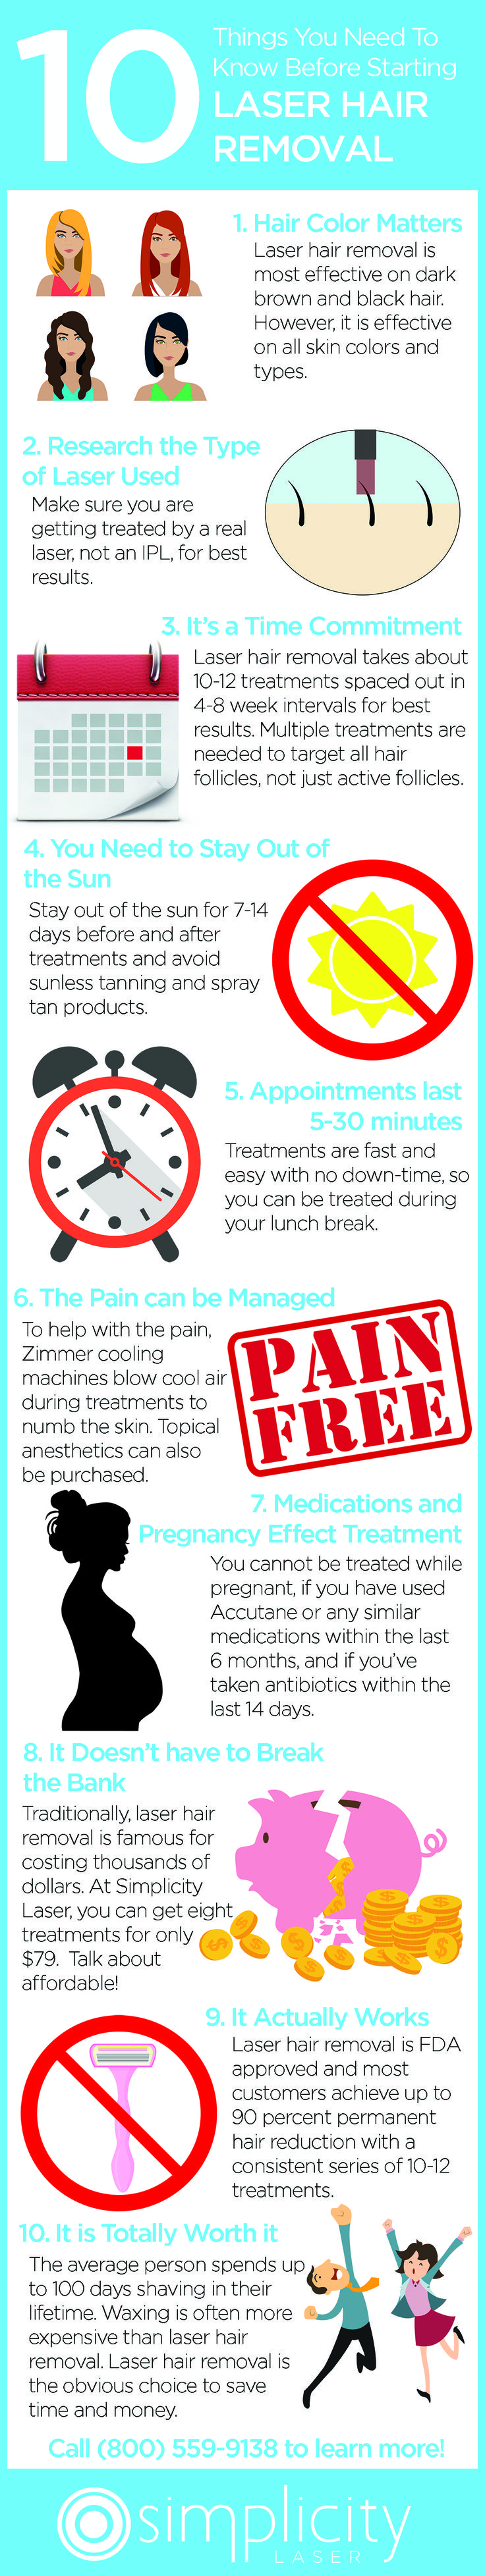 The ultimate laser hair removal infographic